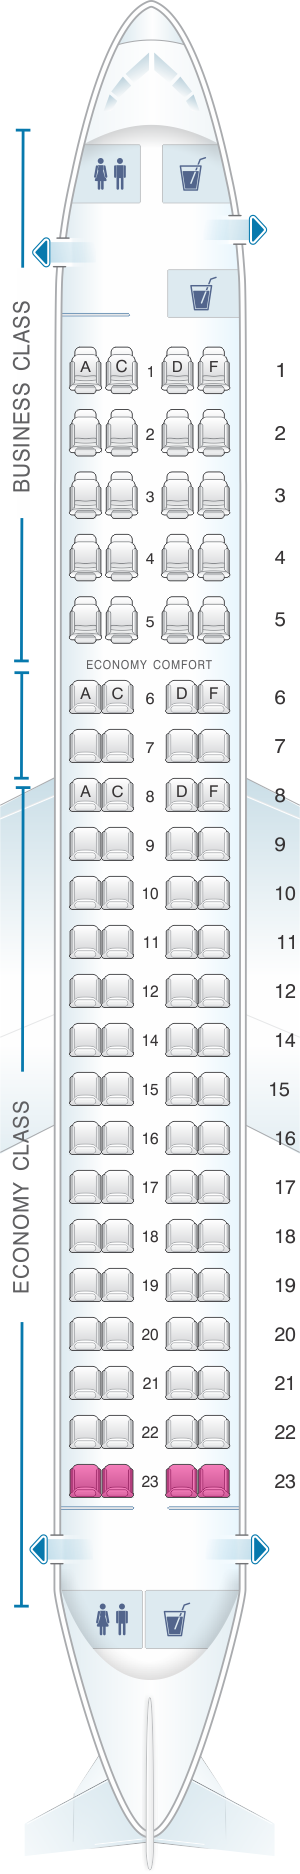 Seat map for KLM Embraer 175